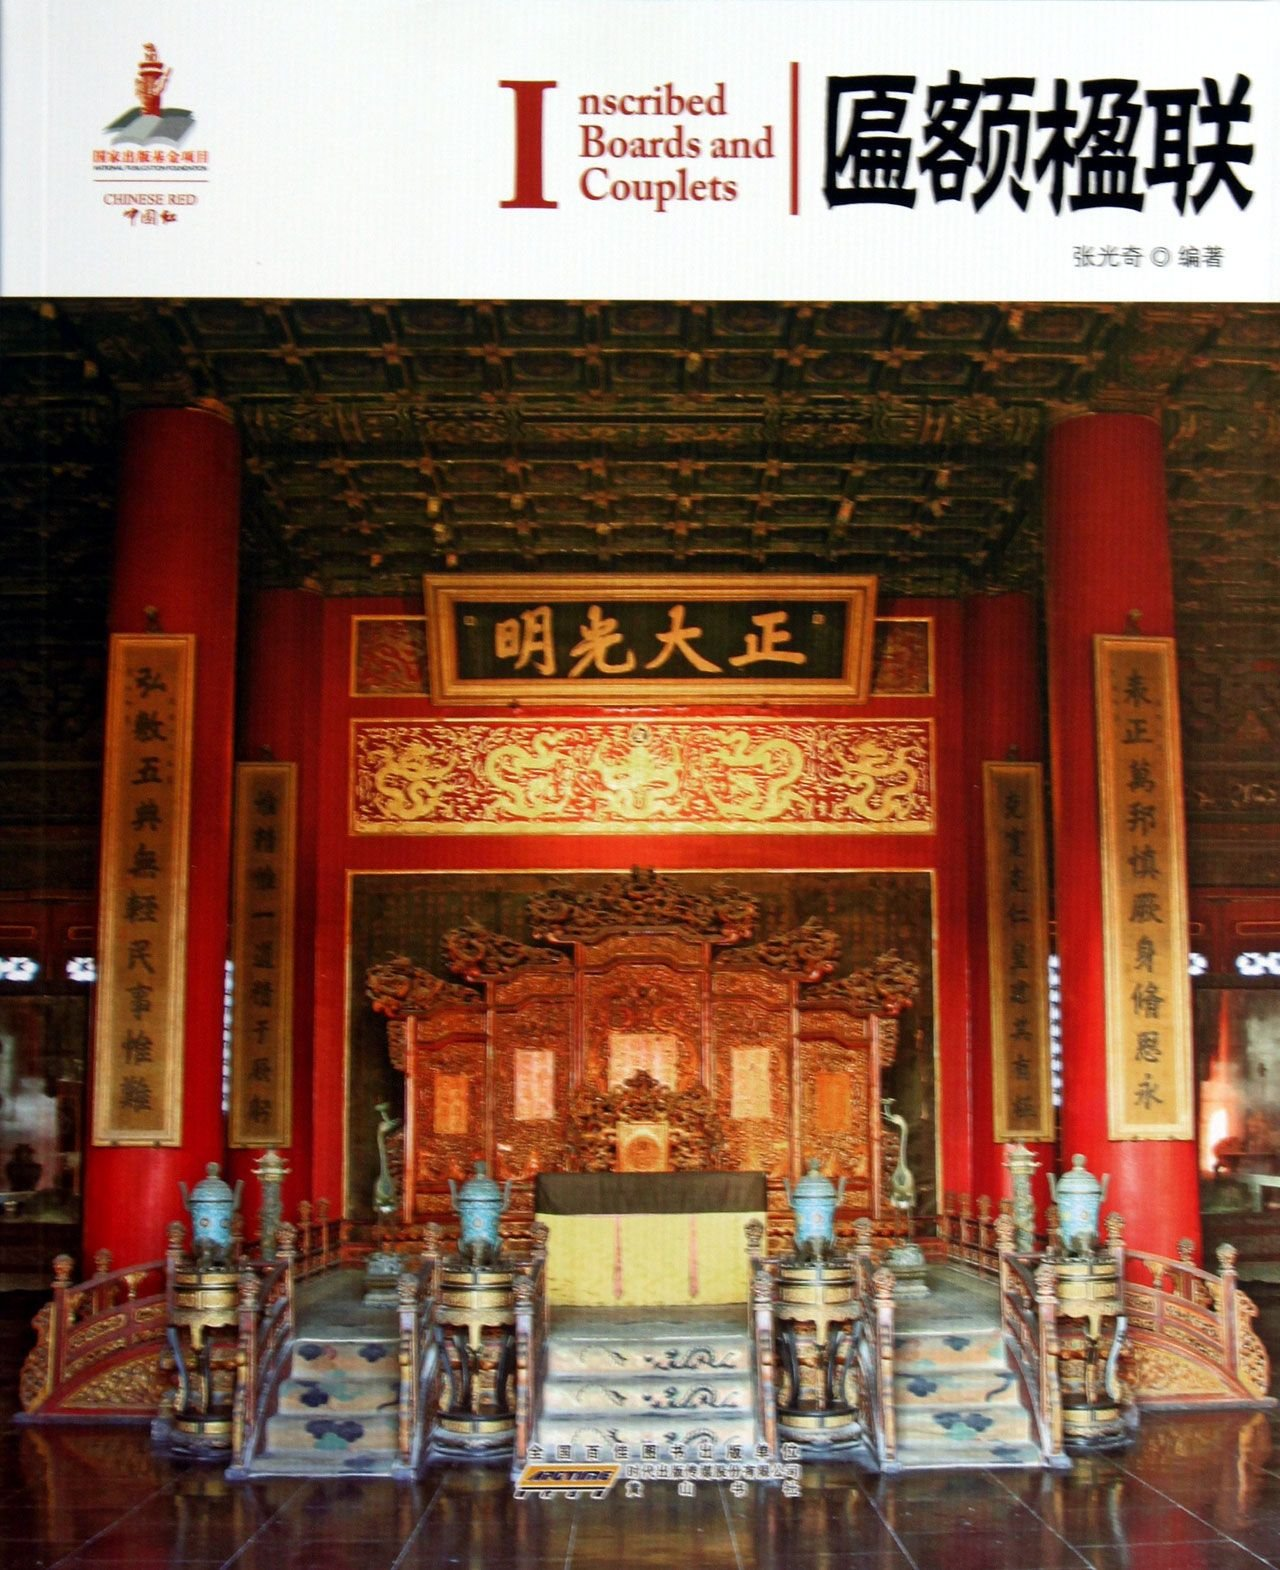 Download Inscribed Boards and Couplets - China Red PDF